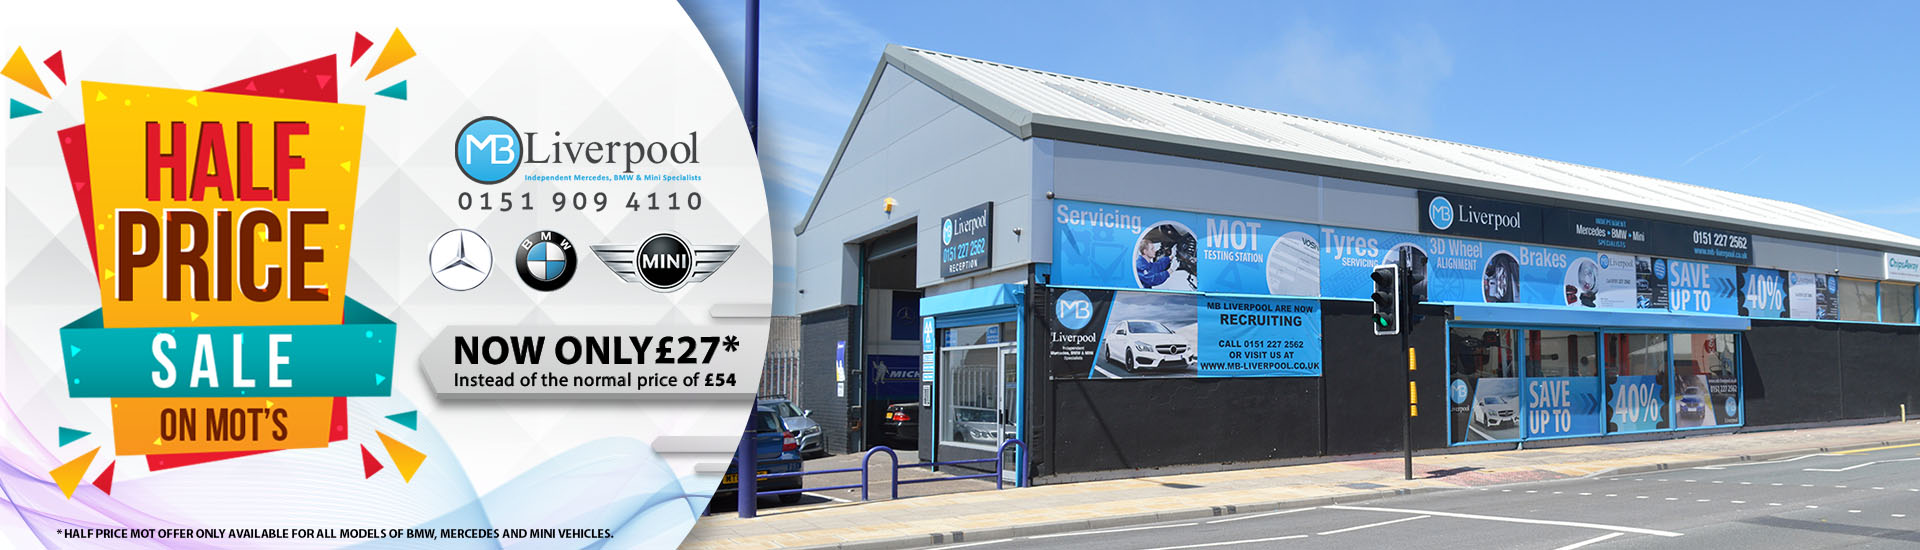 MB Liverpool Half Price Sale on MOT